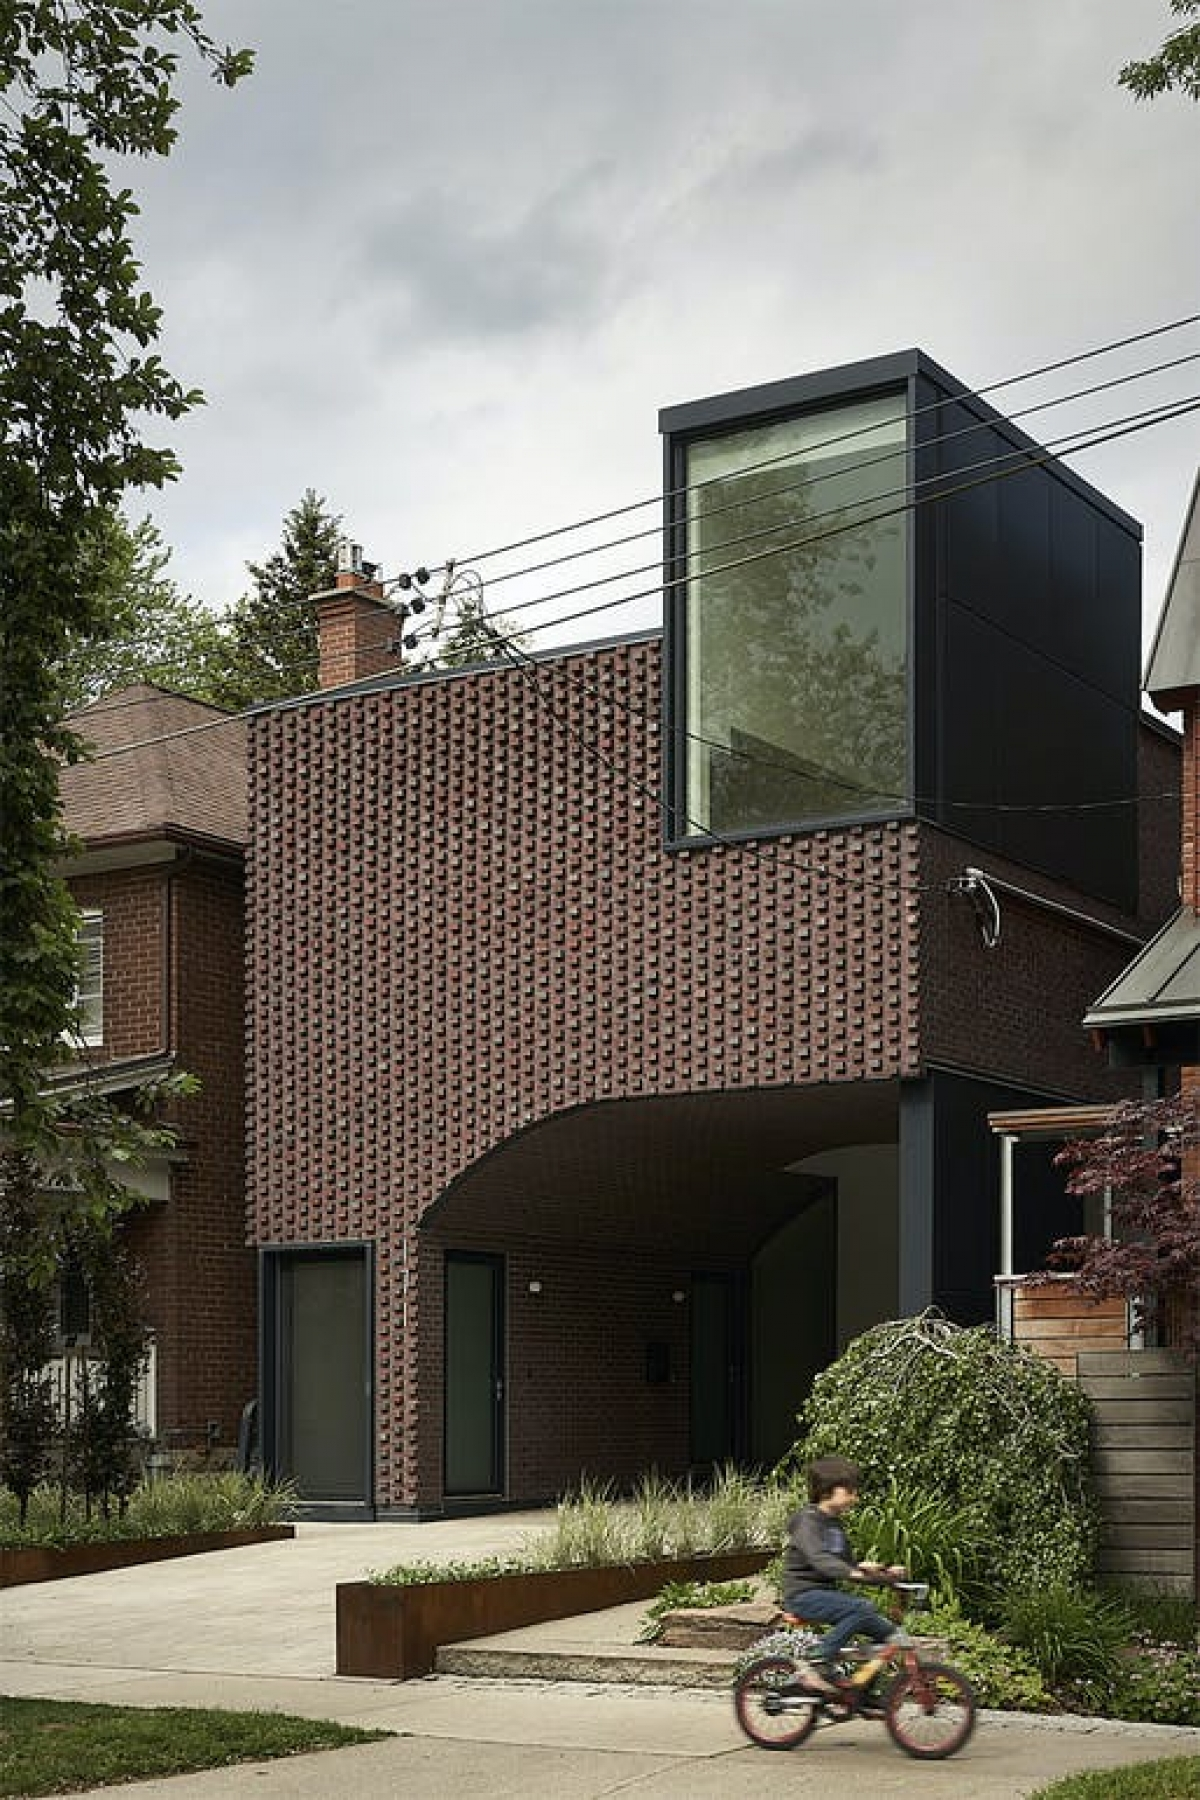 High Park Residence ở Toronto. Ảnh: Doublespace Photography